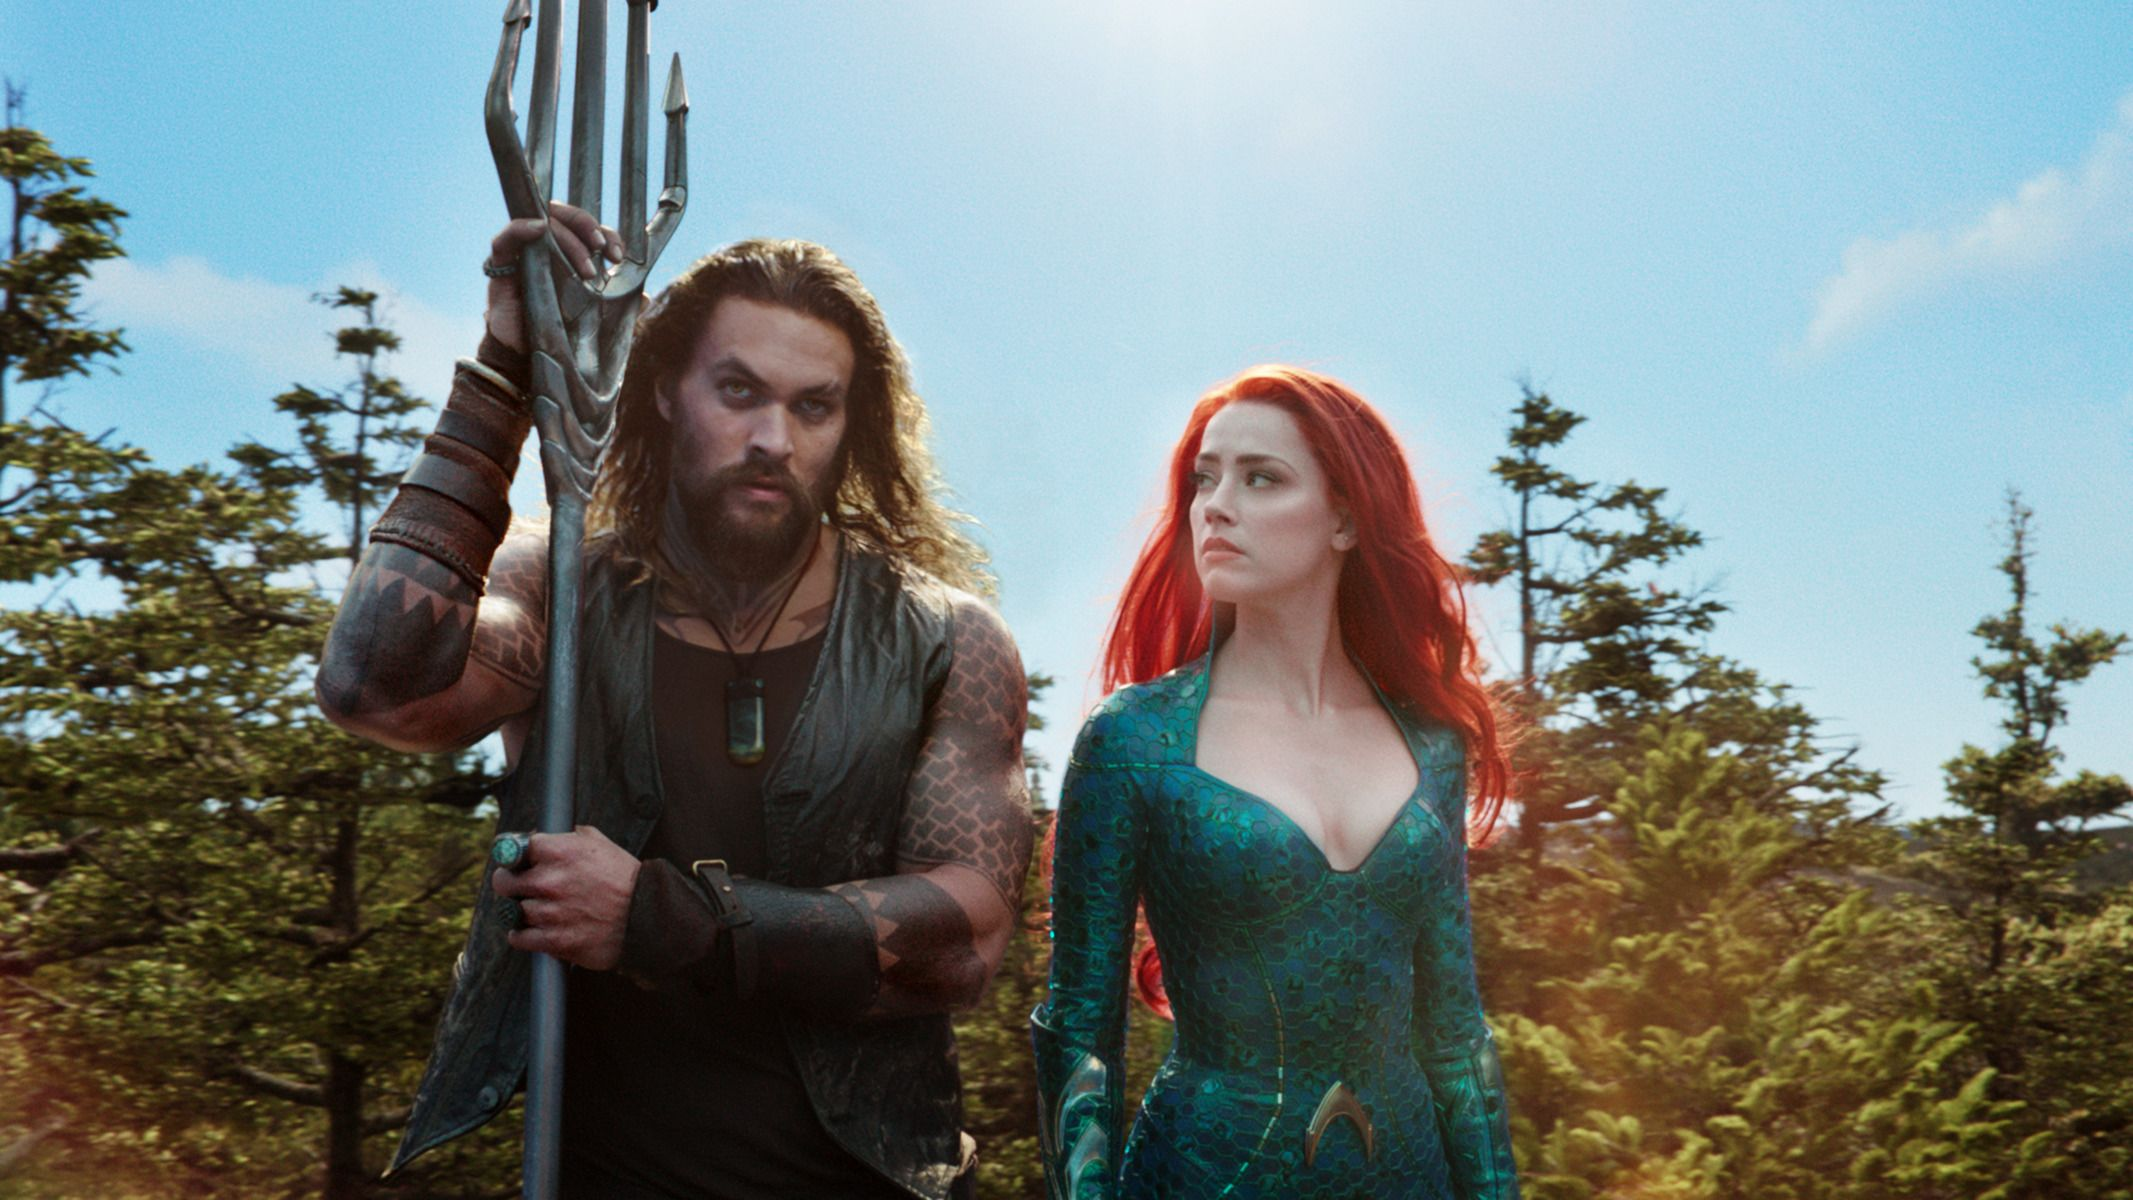 Aquaman star confirms whether they will return for sequel